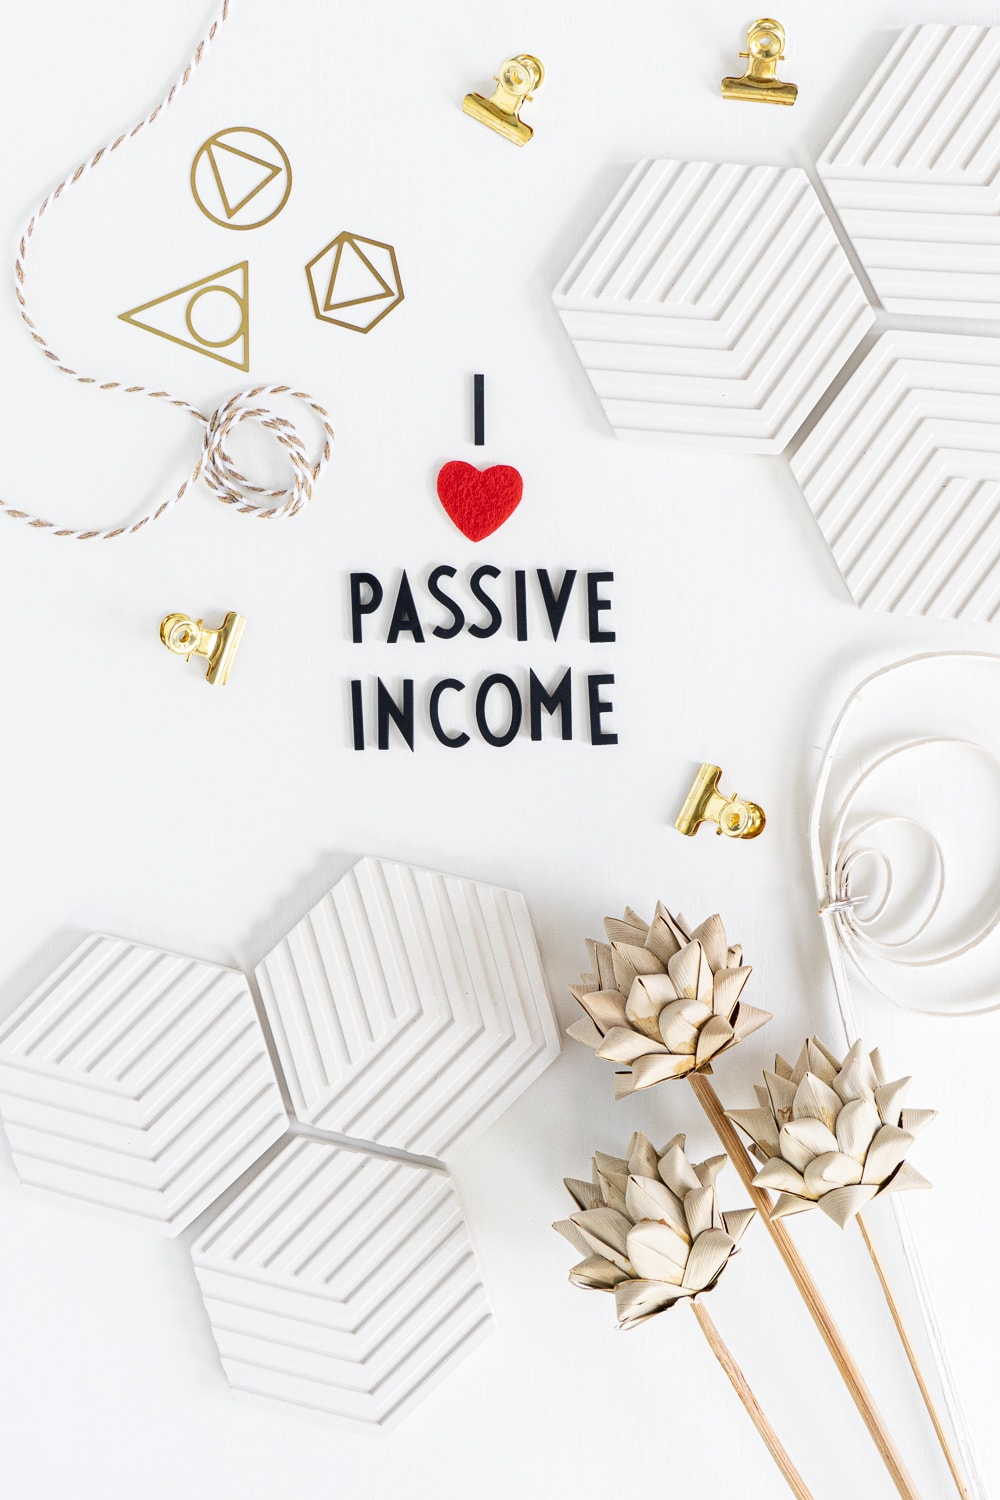 """Learn everything about the best passive income ideas in 2020! An image that shows a flat lay with black letters saying """"I LOVE PASSIVE INCOME"""""""